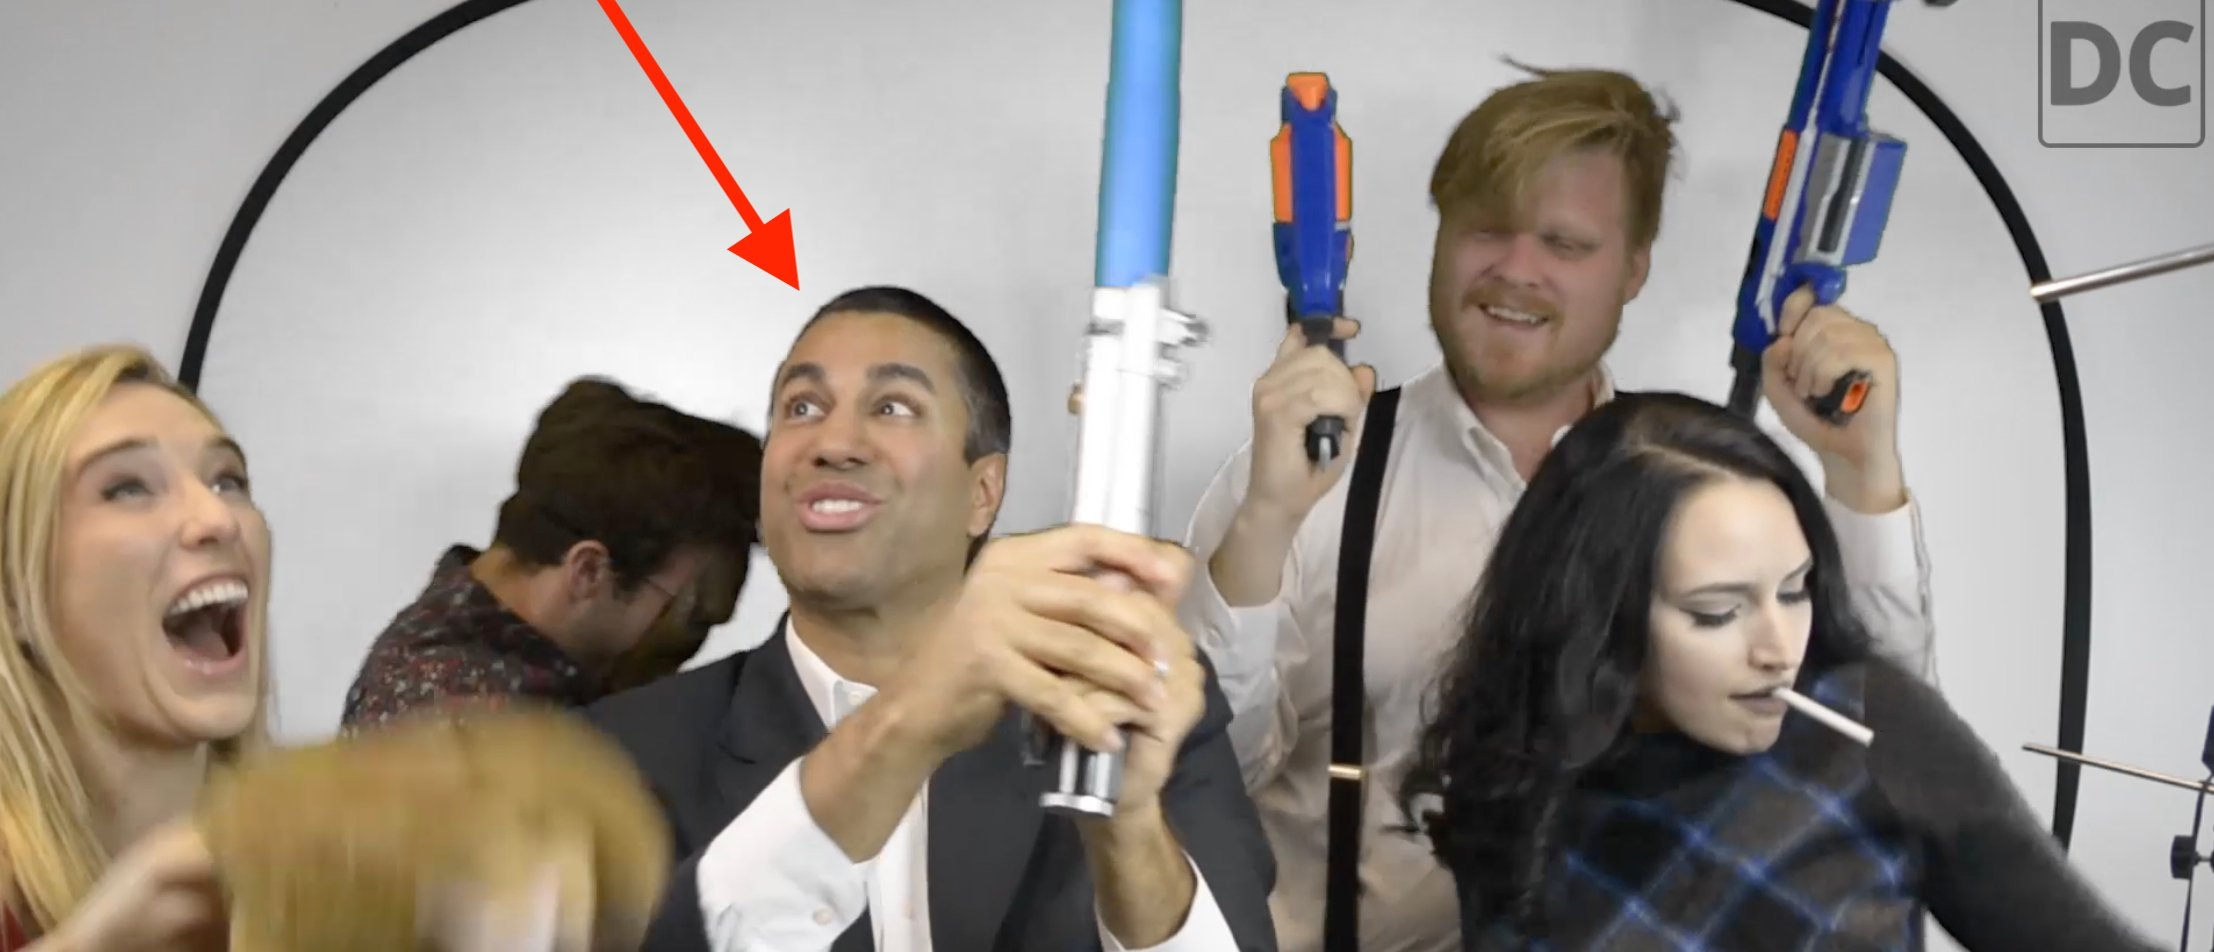 Ajit Pai Harlem Shake (Photo: Screenshot/The Daily Caller)